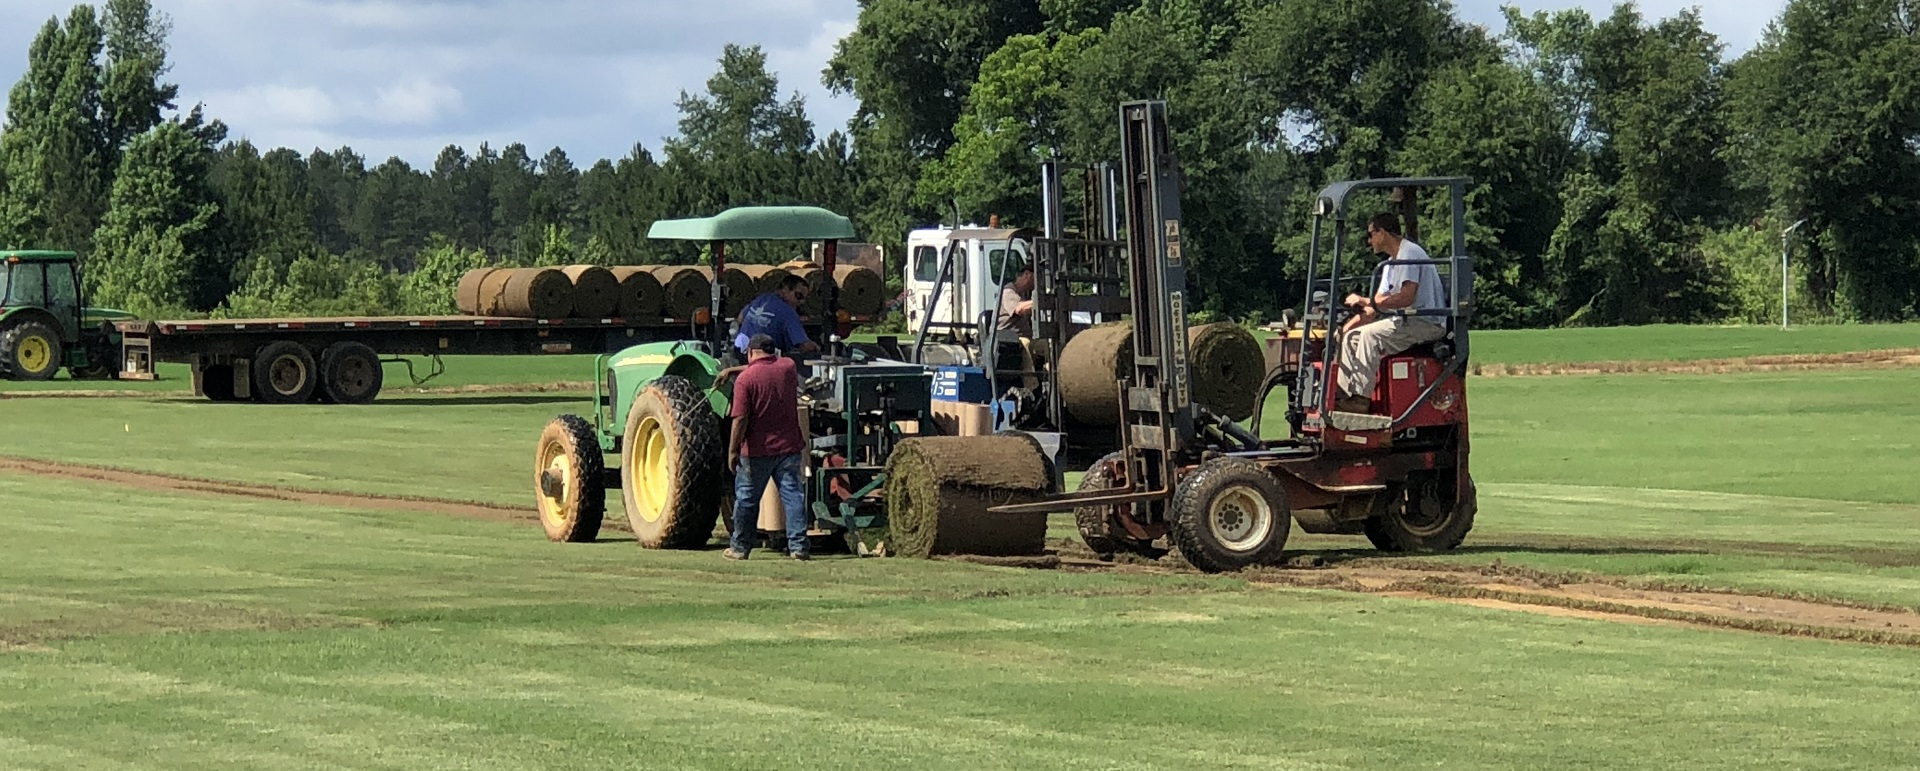 Paradise Turf Farm laying down turf with forklifts and tractor